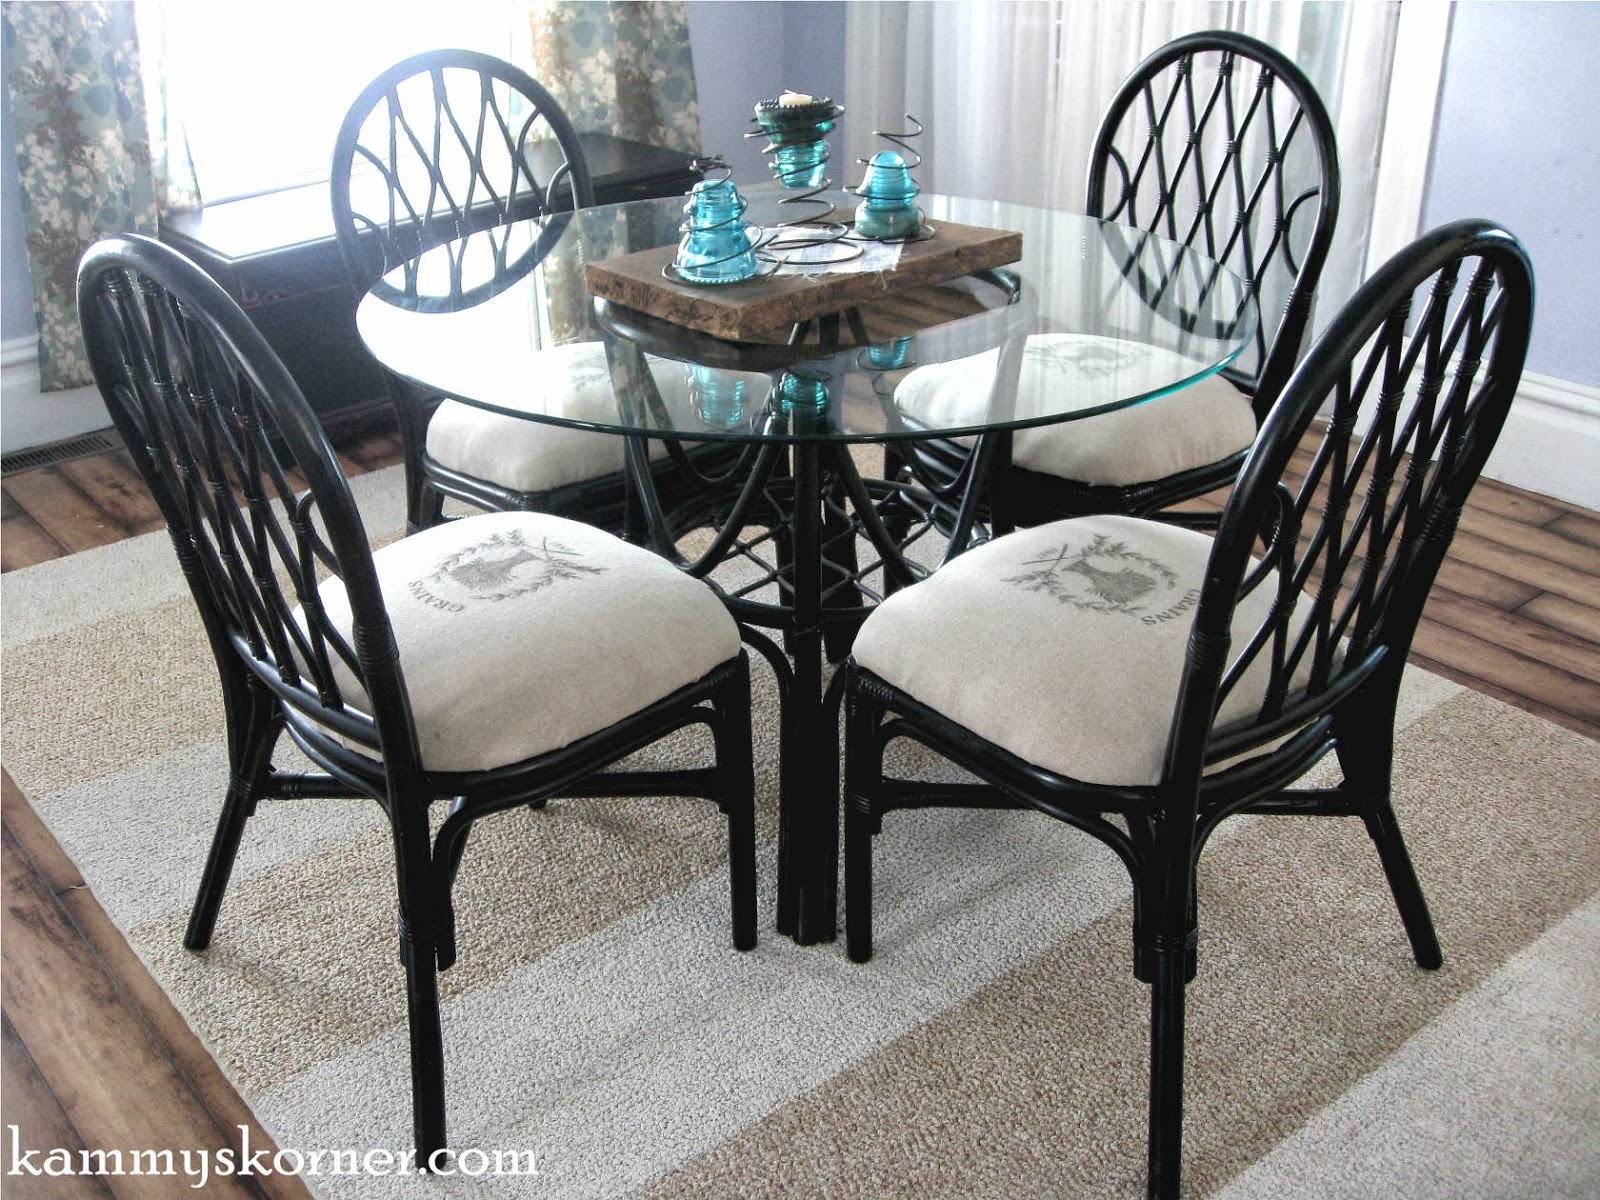 Bamboo Dining Chair Kammy 39s Korner Rattan Dining Chairs Makeover Image